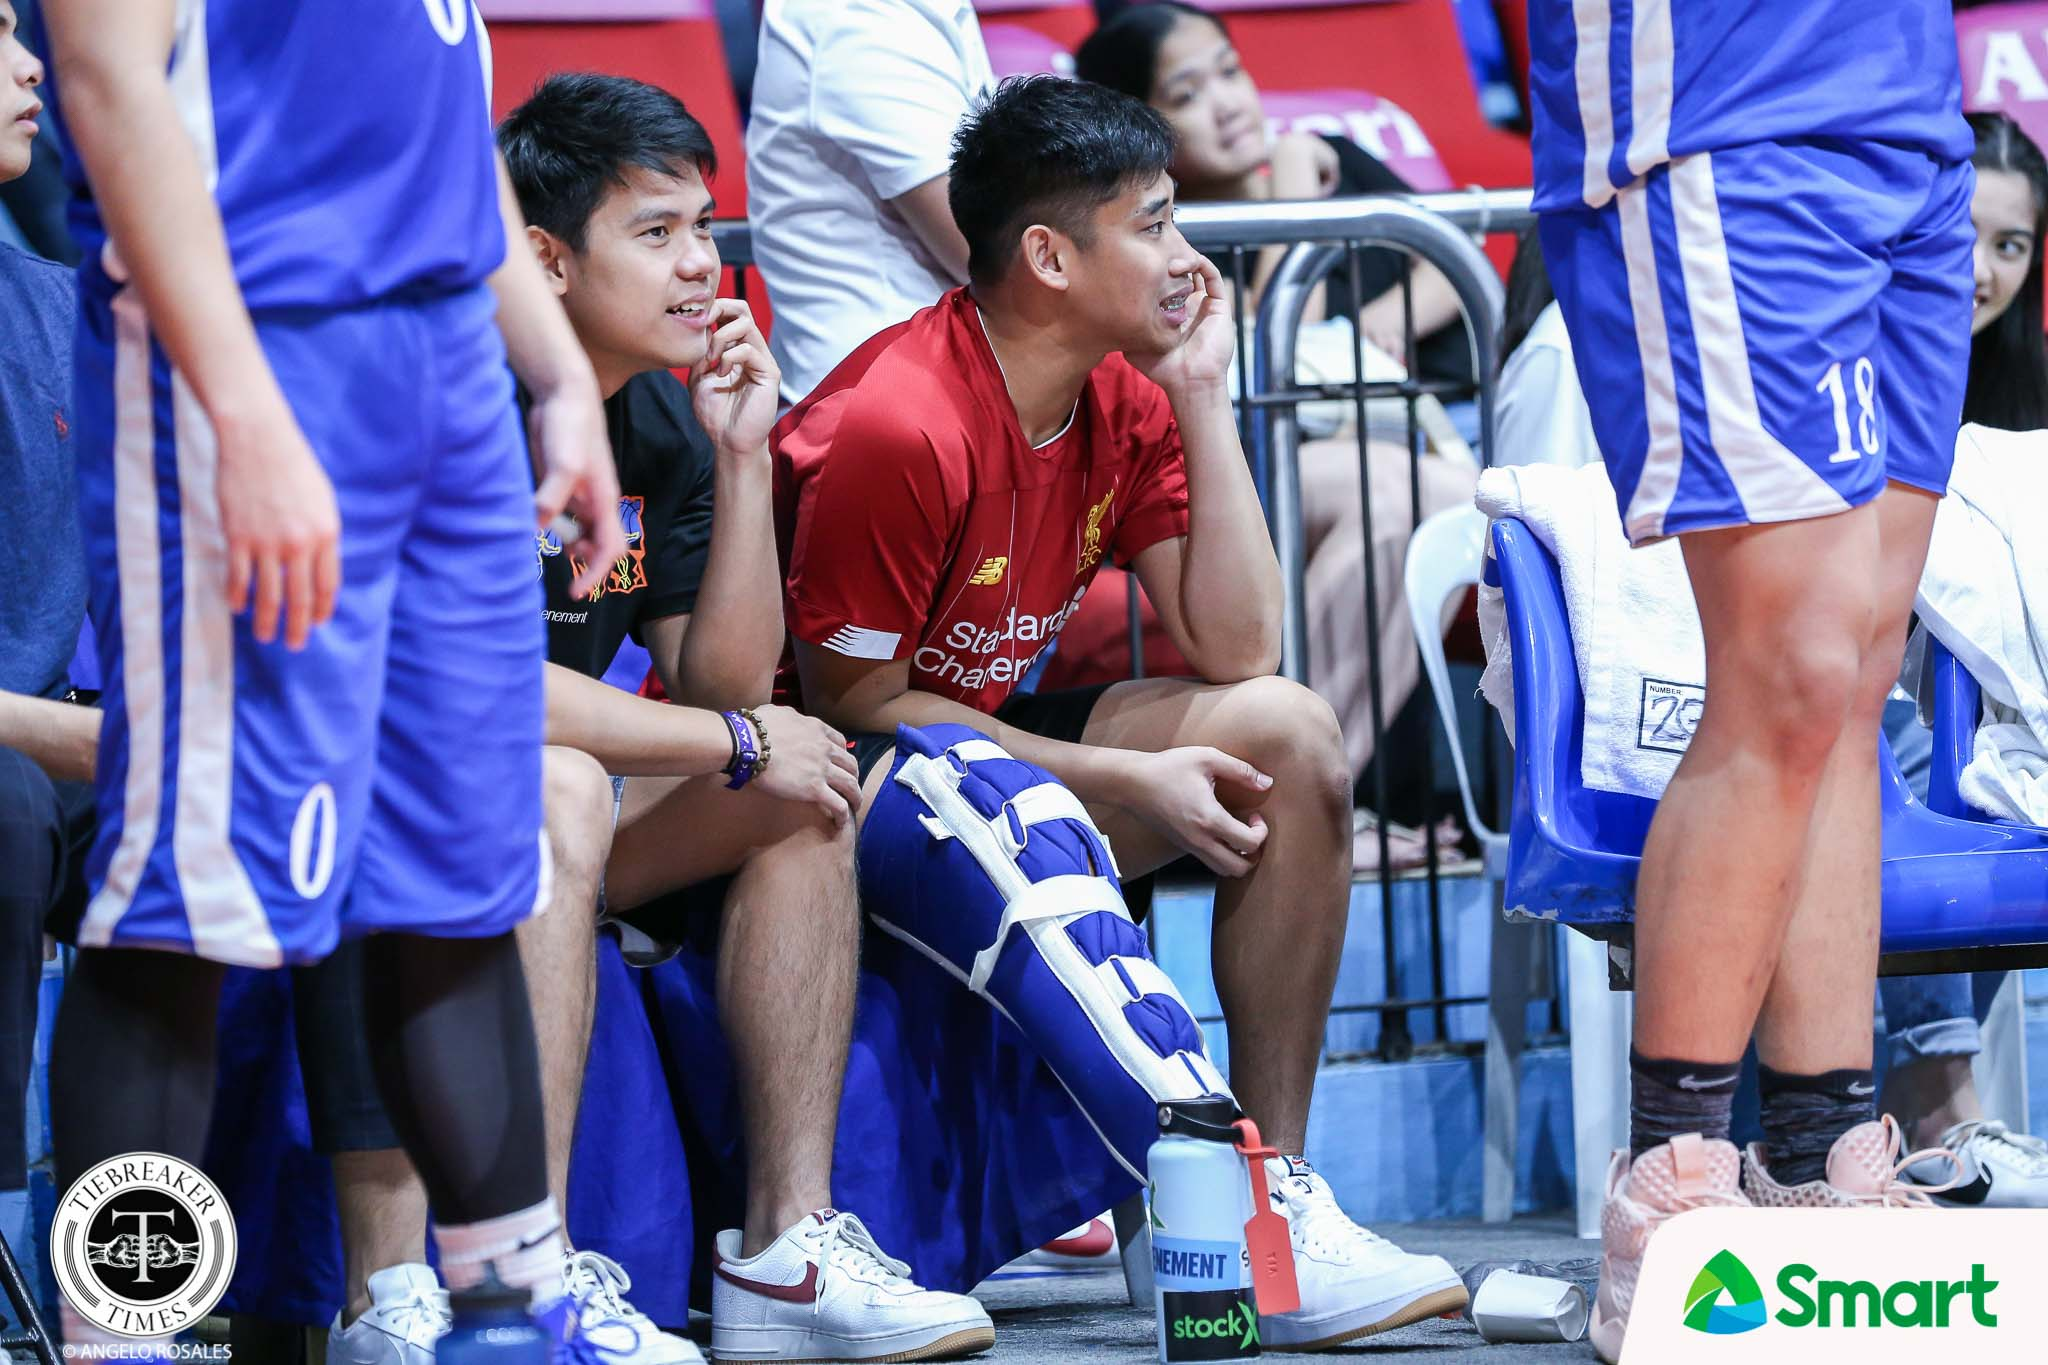 Tiebreaker Times BJ Andrade suffers ACL tear, out for UAAP Season 83 ADMU Basketball News  Tab Baldwin BJ Andrade Ateneo Men's Basketball 2020 PCCL National Championship